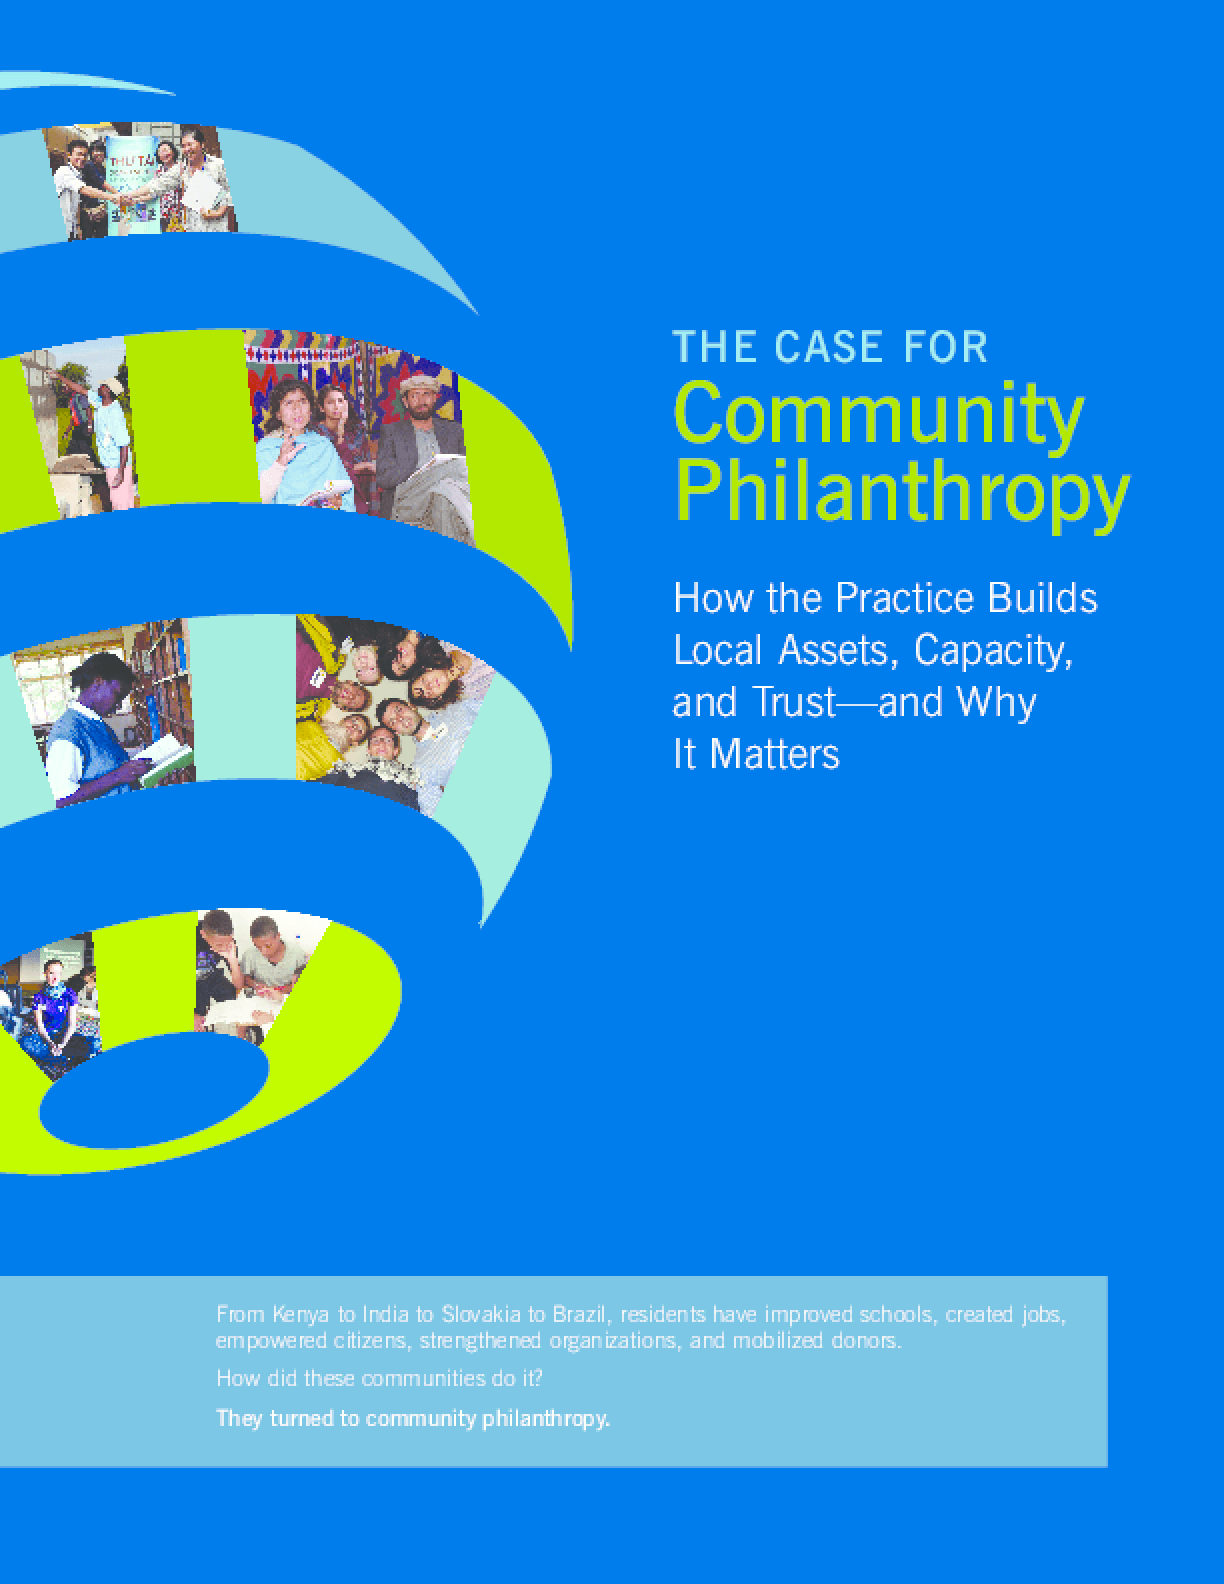 The Case for Community Philanthropy: How the Practice Builds Local Assets, Capacity, and Trust-- and Why It Matters